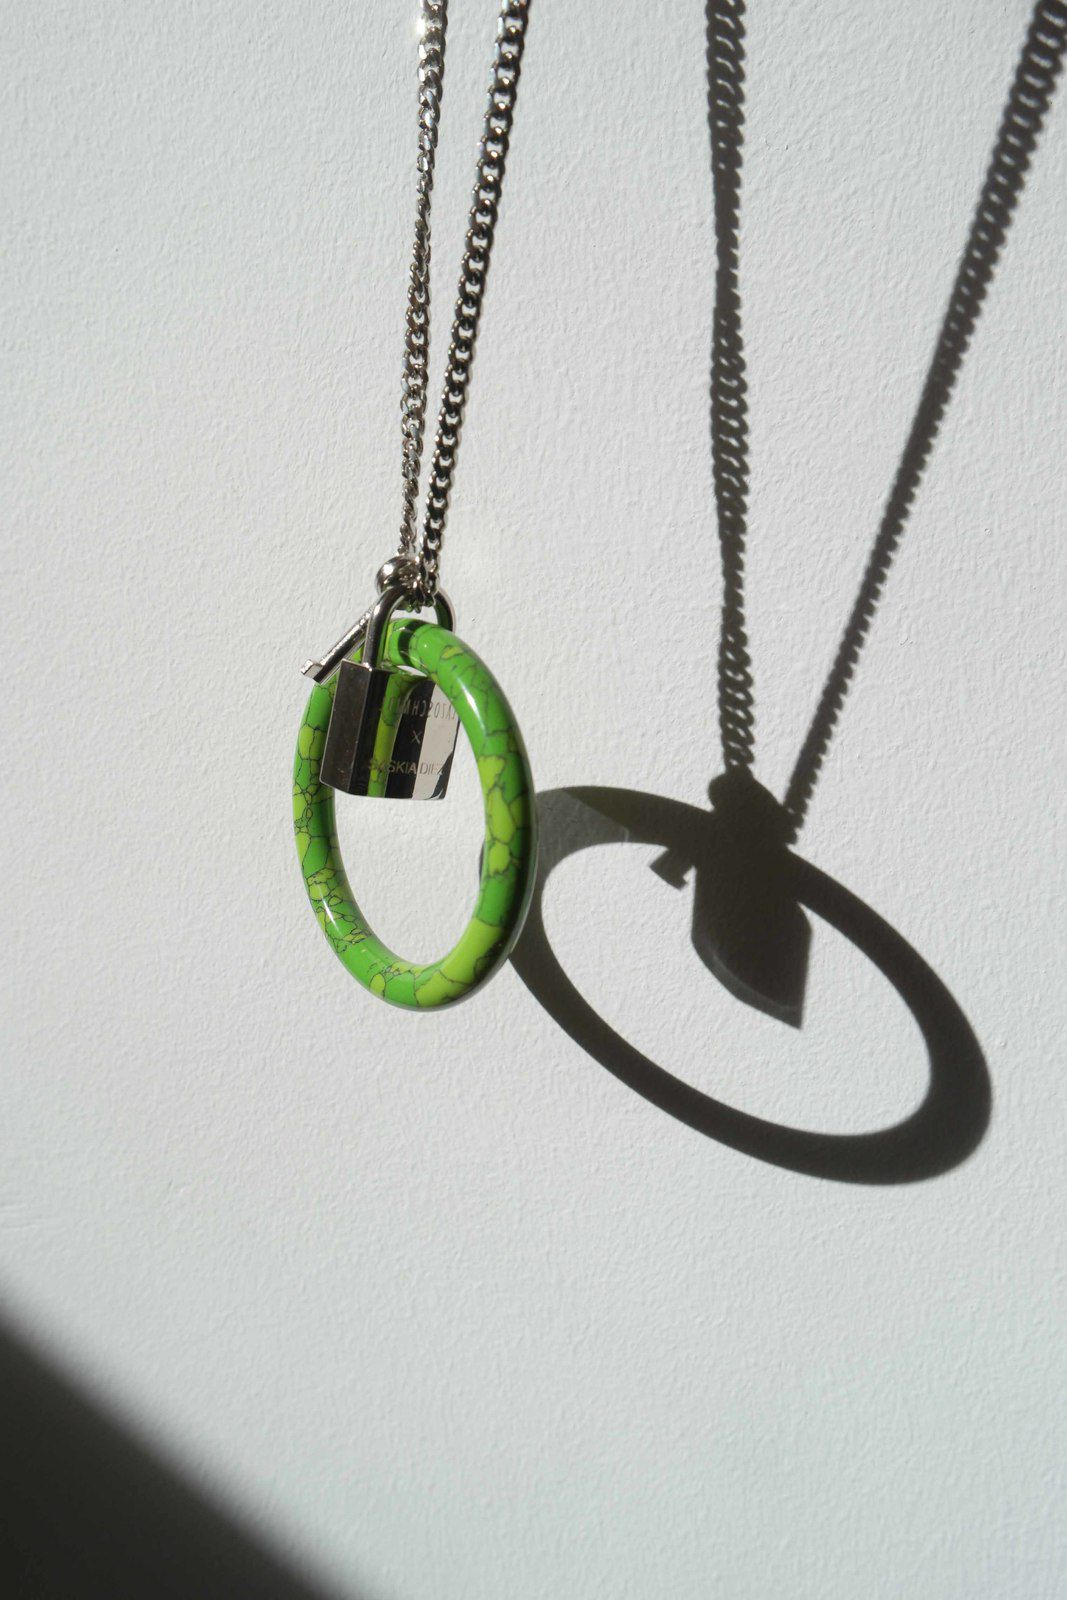 LAZOSCHMIDL CONTINUES THE JEWELLERY COLLABORATION WITH SASKIA DIEZ PRESENTING COCKRING NECKLACES IN RARE STONES